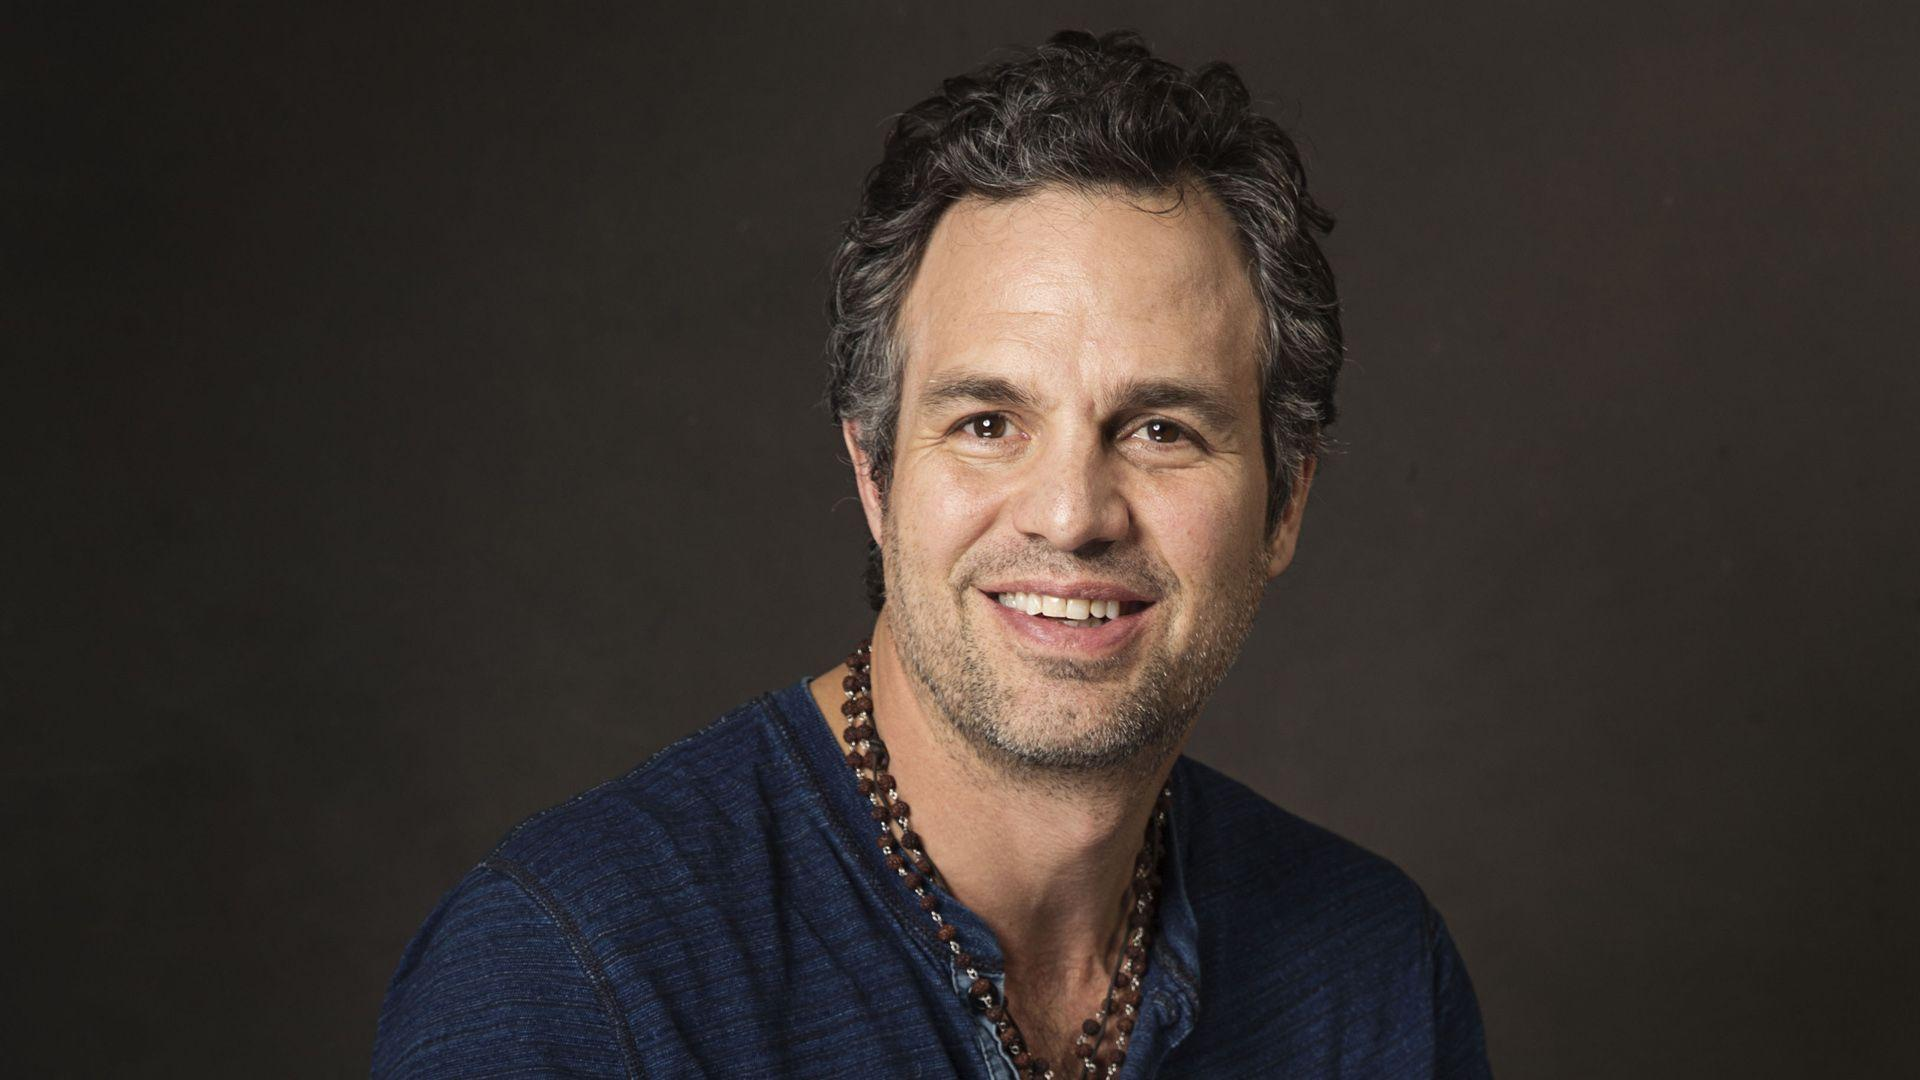 HD Mark Ruffalo Wallpapers – HdCoolWallpapers.Com